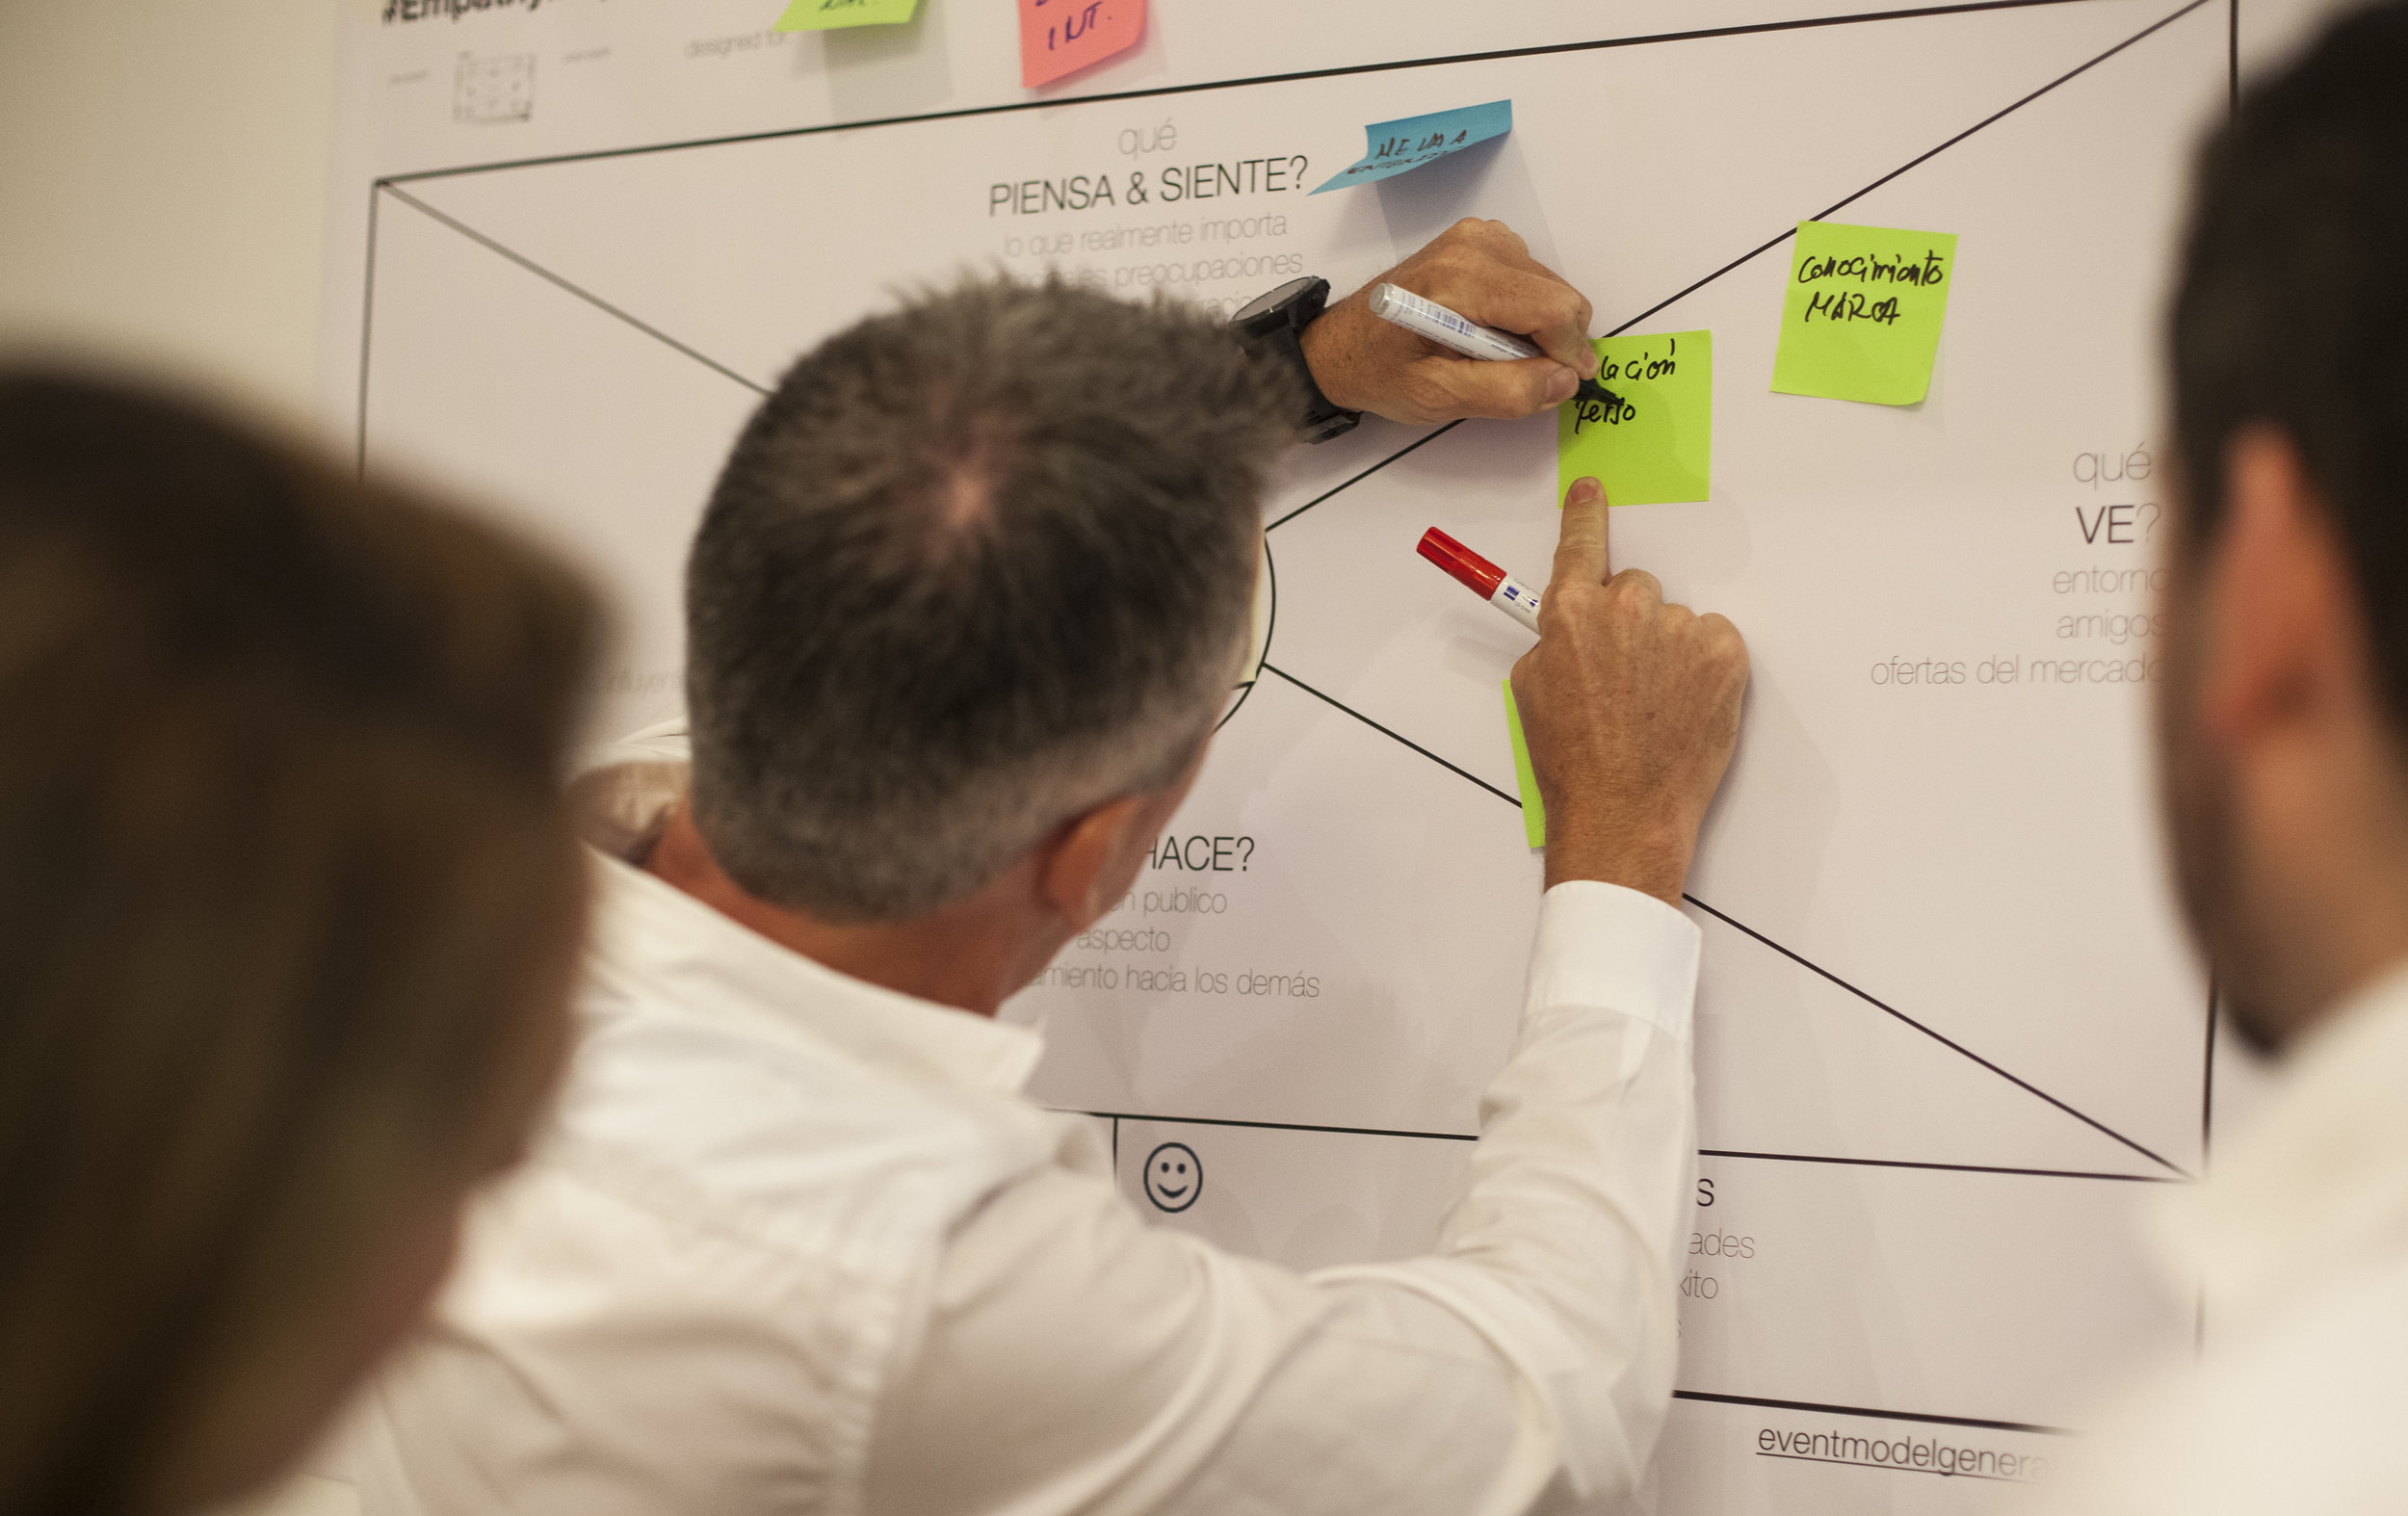 Dealing with work strategically - With the right environment and team dynamics in place, teams will be ready to tackle their work in a more strategic way. Whether finding the definition of the company vision, planning major initiatives or performing any other task along the way, they will improve their work step by step.